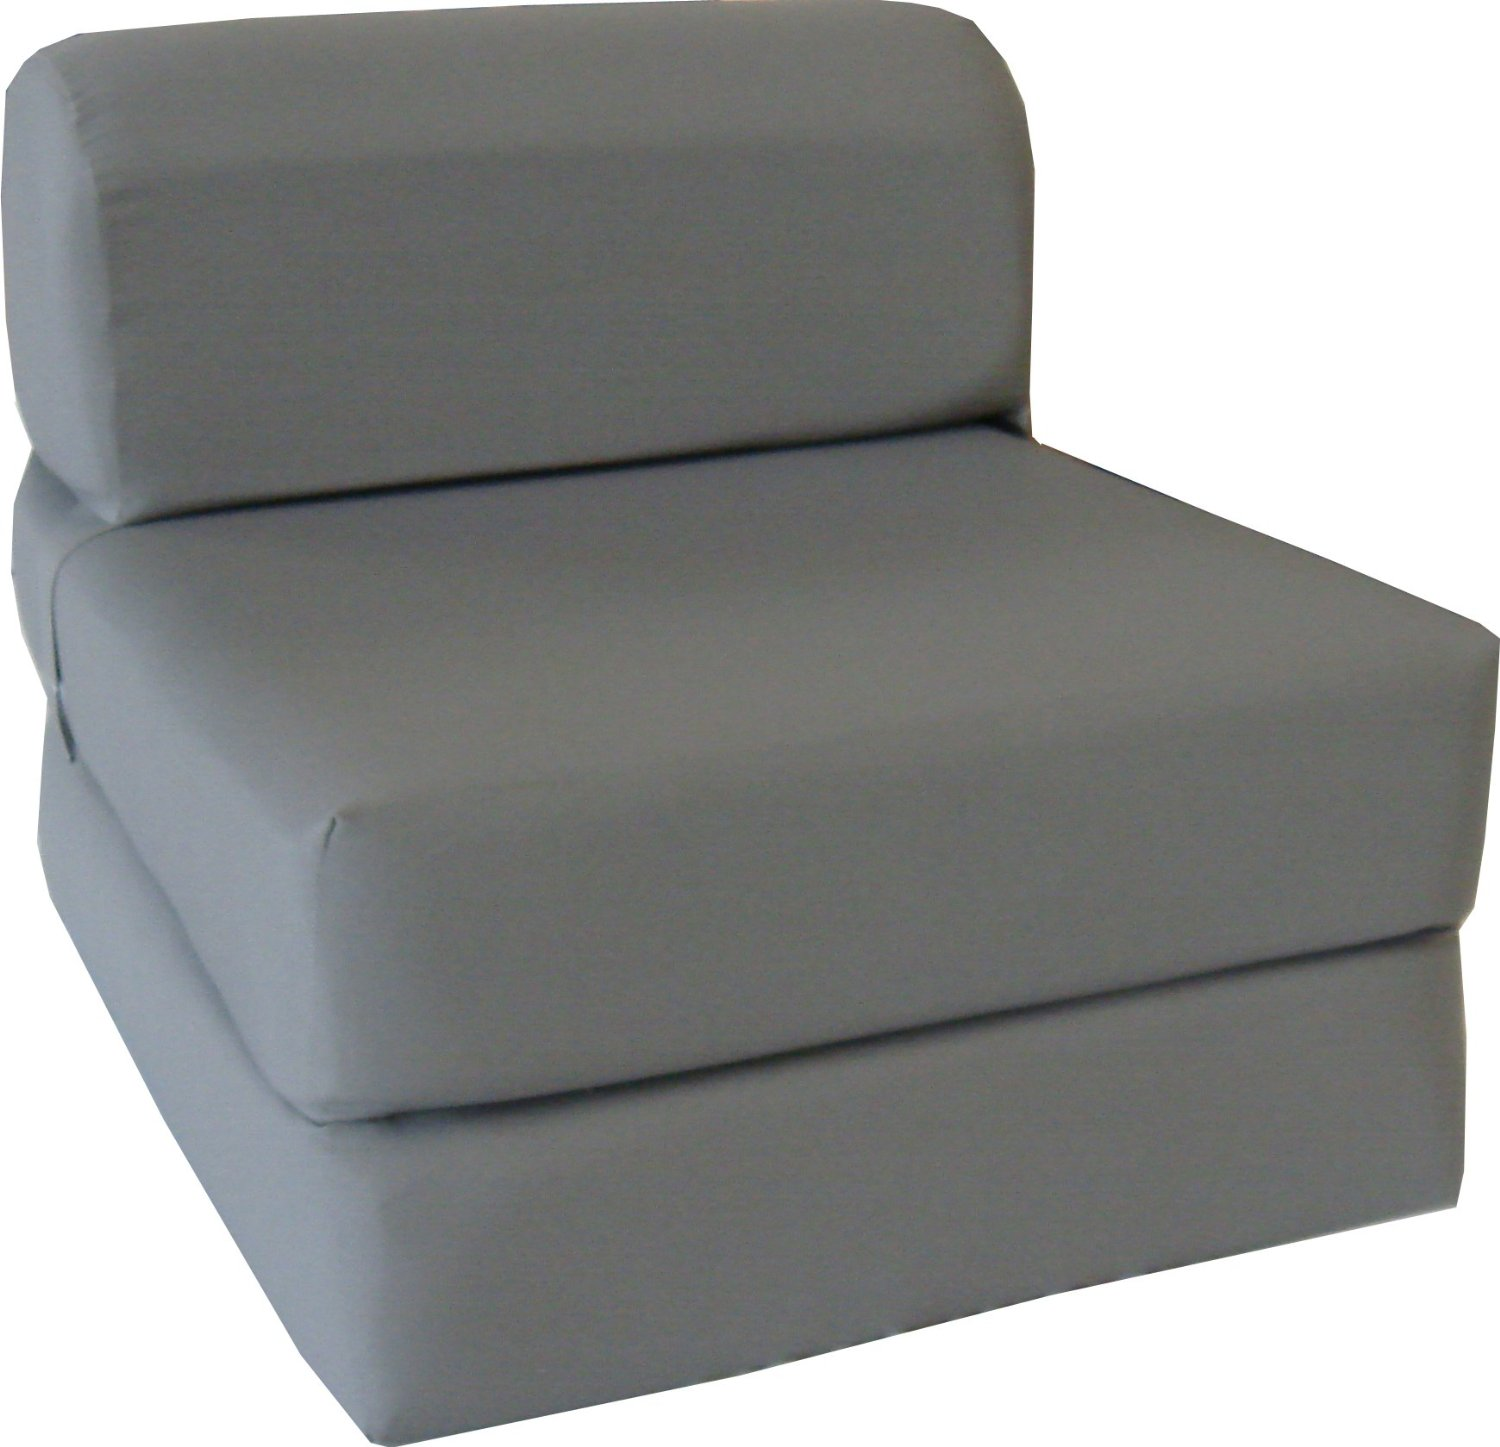 "amazon - gray sleeper chair folding foam bed sized 6"" thick x"